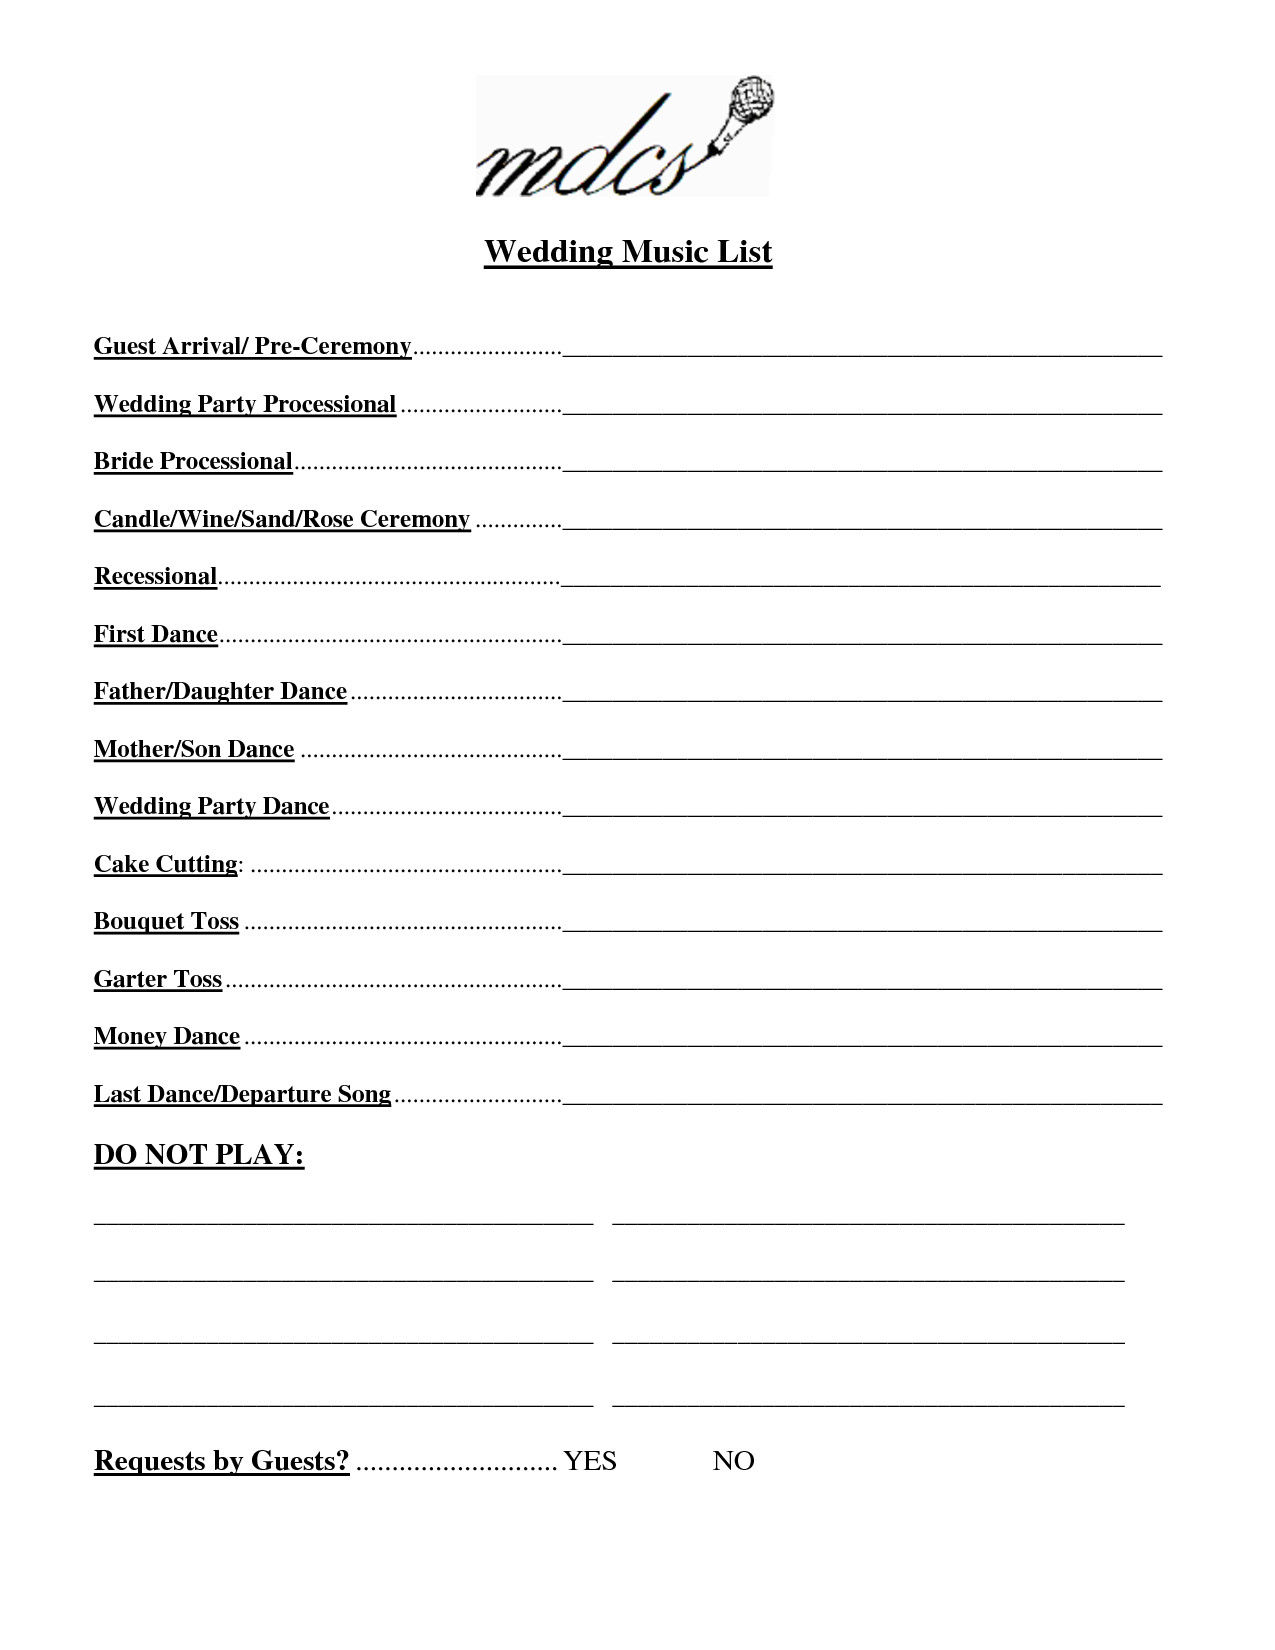 Wedding Party List Template Wedding Party List Template Free